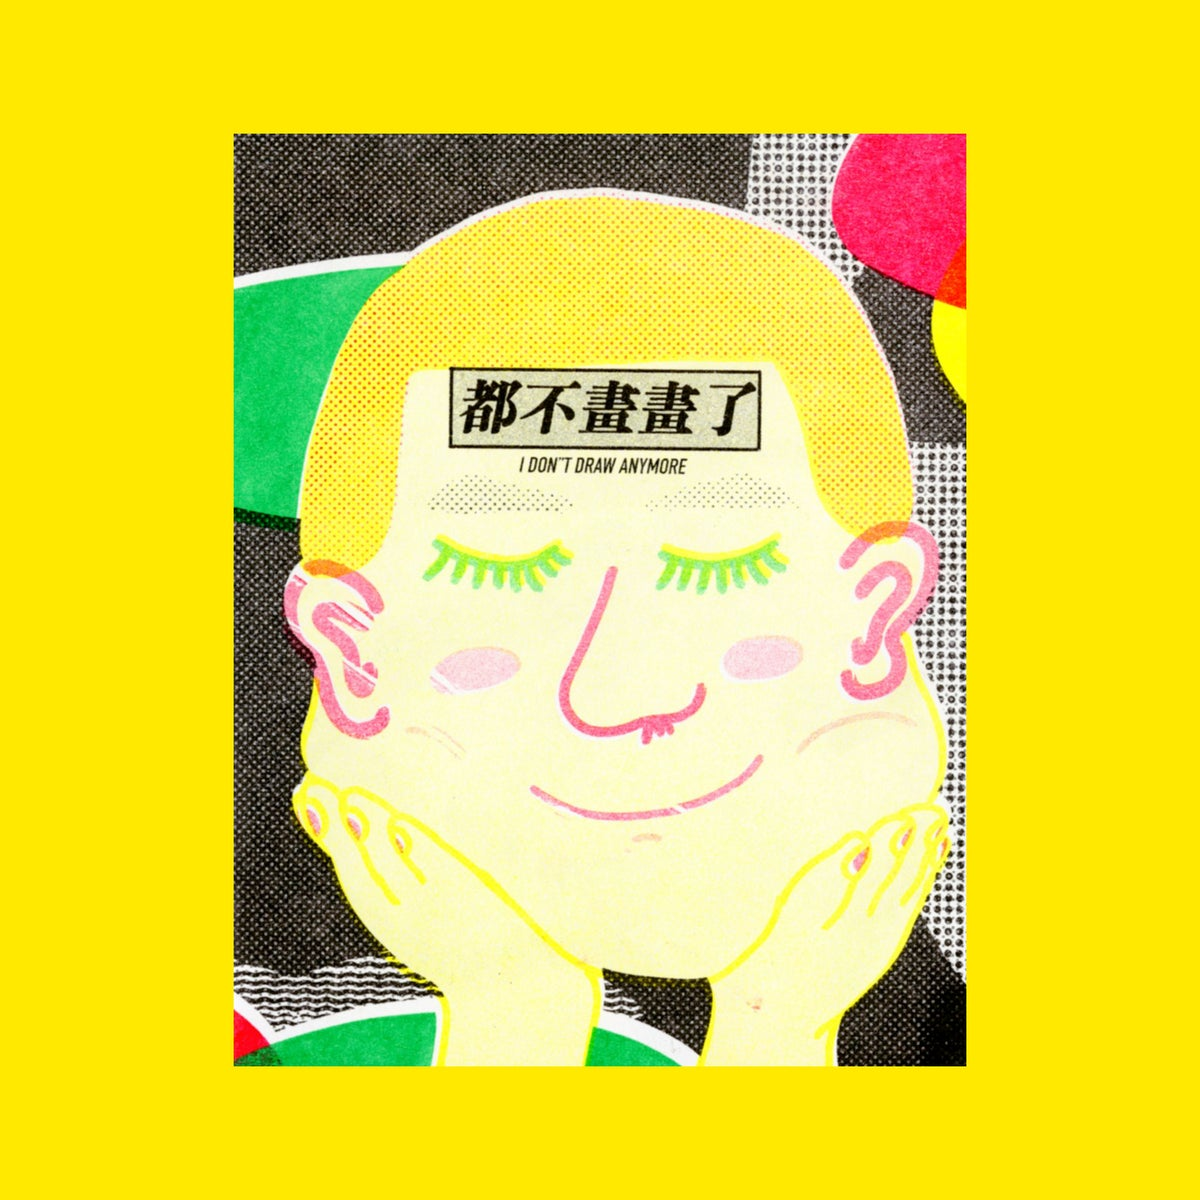 Image of I Don't Draw Anymore 都不画画了